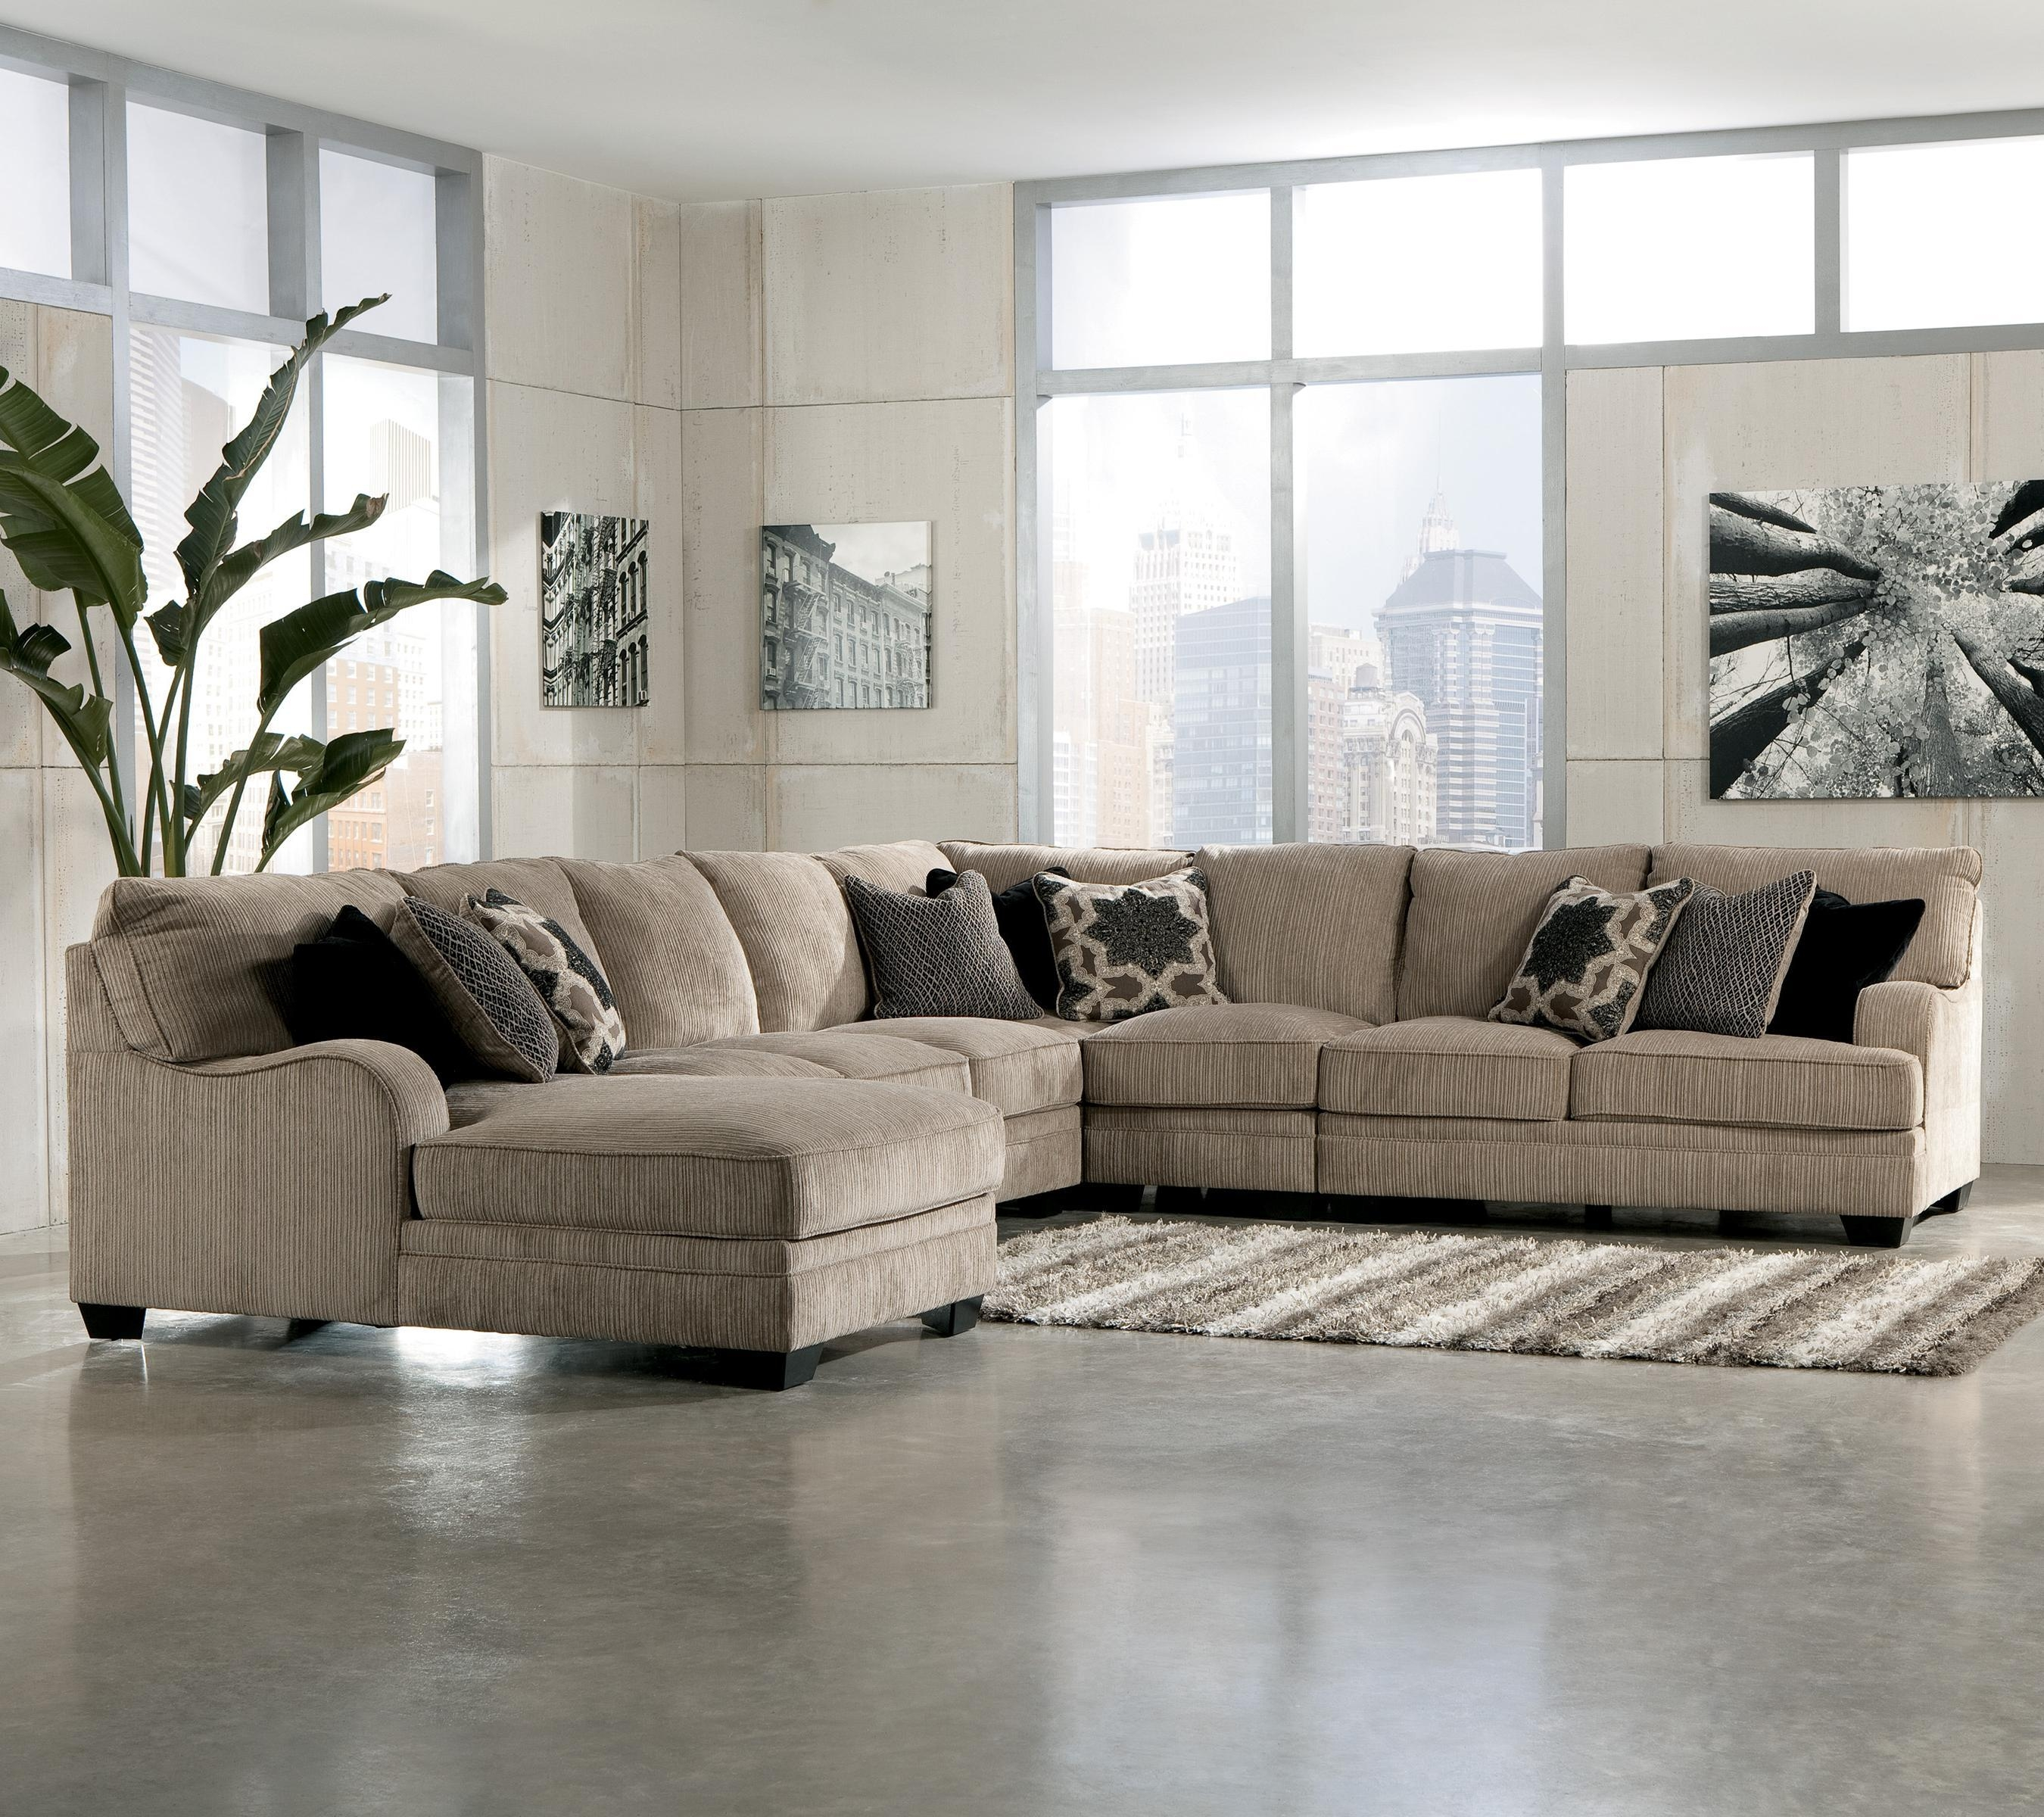 Signature Designashley Katisha – Platinum 5 Piece Sectional Inside Ashley Furniture Brown Corduroy Sectional Sofas (Image 11 of 20)